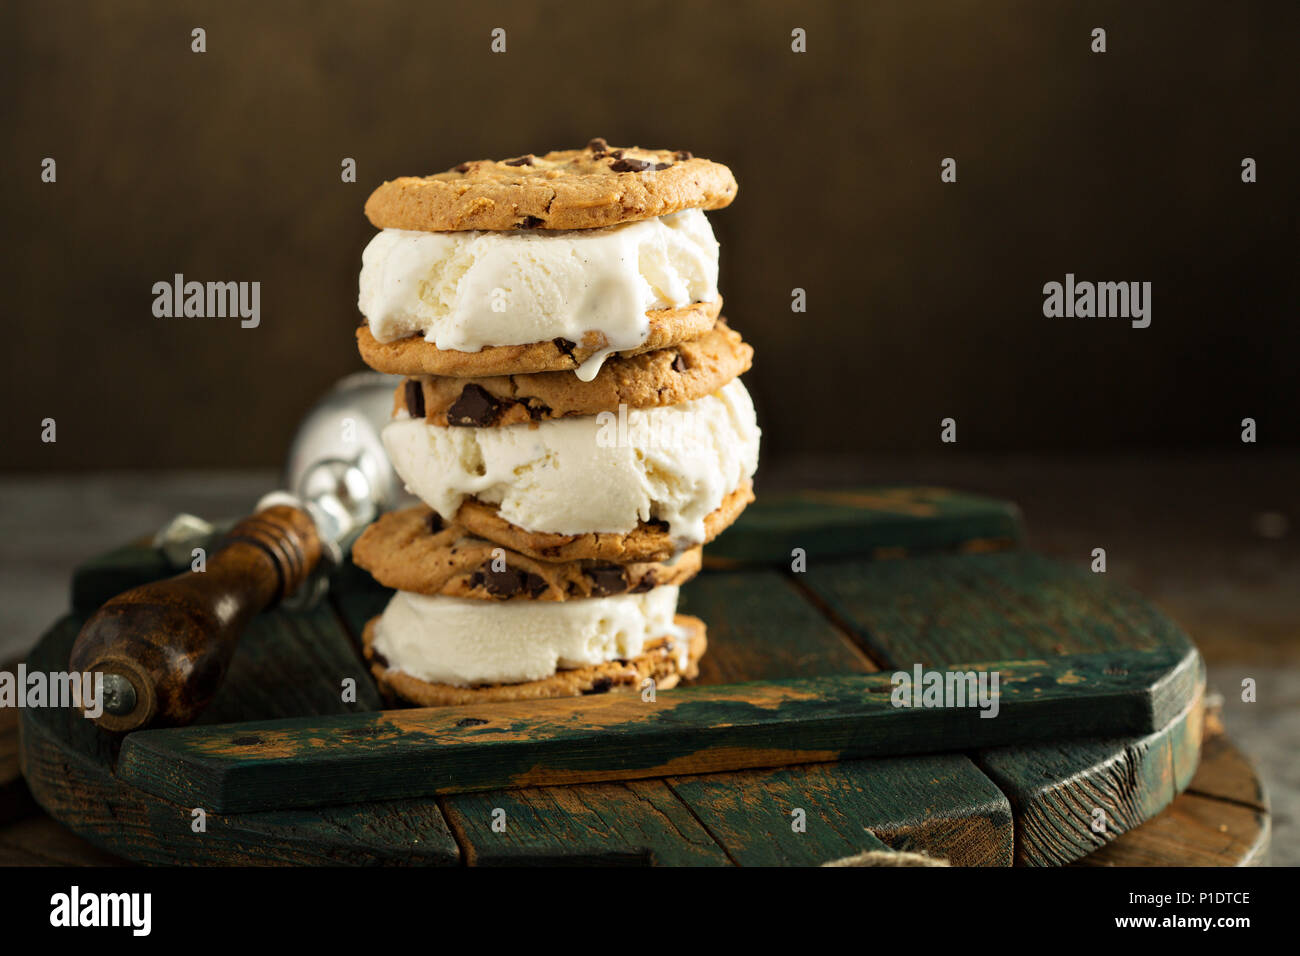 Homemade ice cream sandwiches with chocolate chip cookies Stock Photo